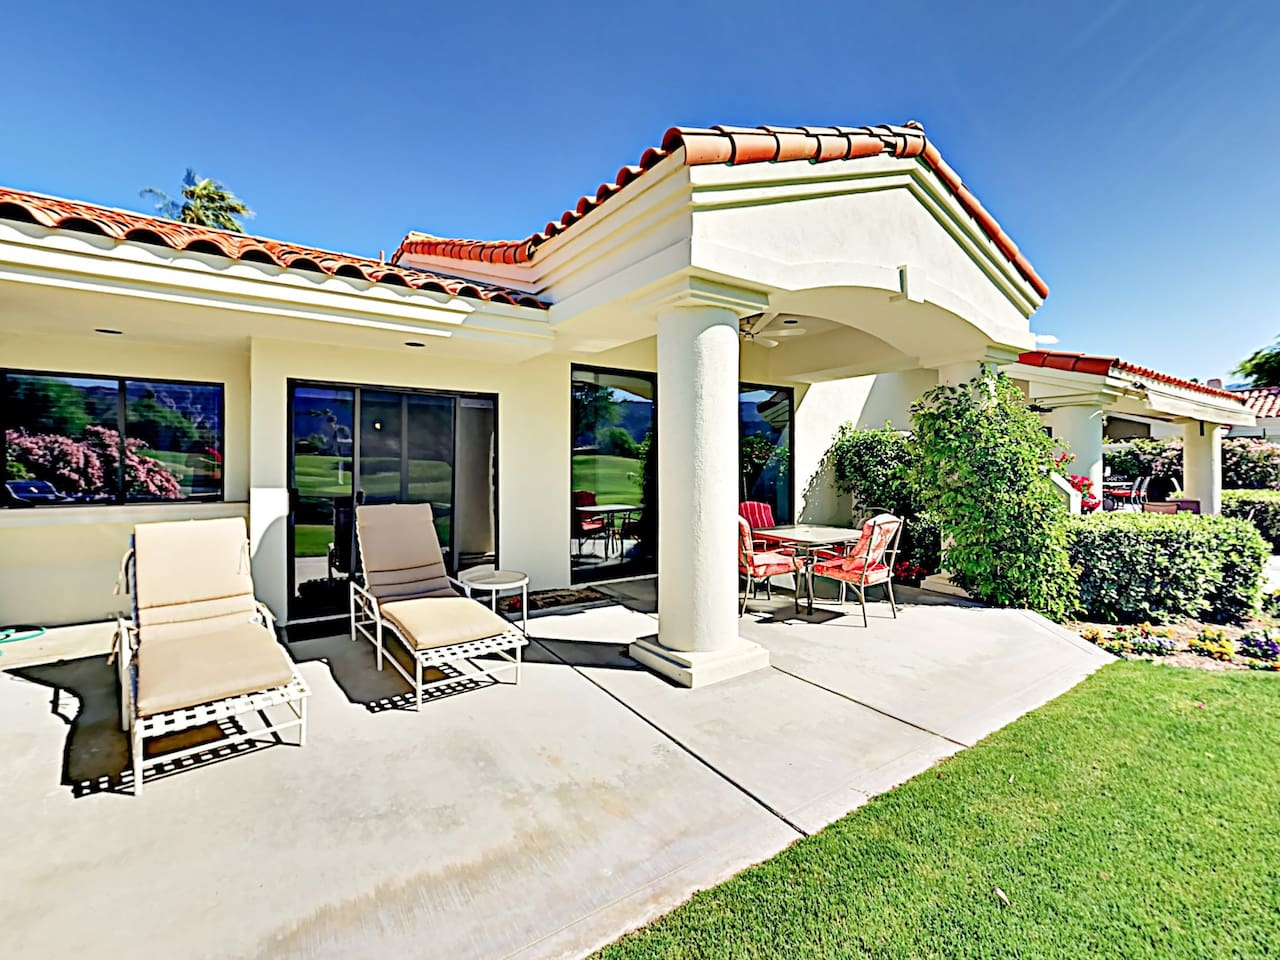 Welcome to La Quinta! This condo is professionally managed by TurnKey Vacation Rentals.